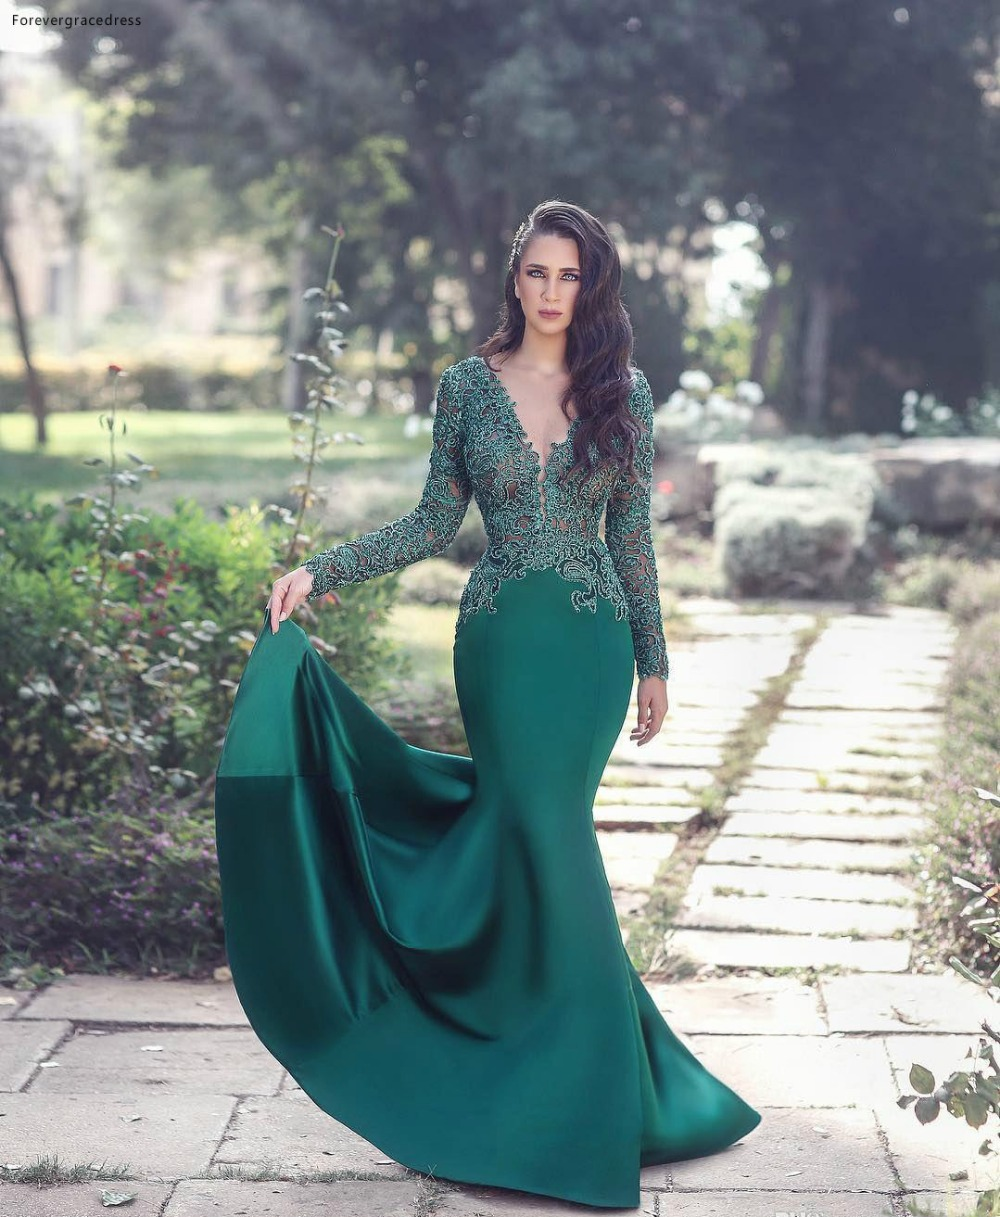 2018 Sexy Sheer Neck Dark Green Mermaid Evening Dresses Illusion Lace Appliques Long Sleeves Satin Floor-Length Formal Wears Evening Gowns 119 (3)